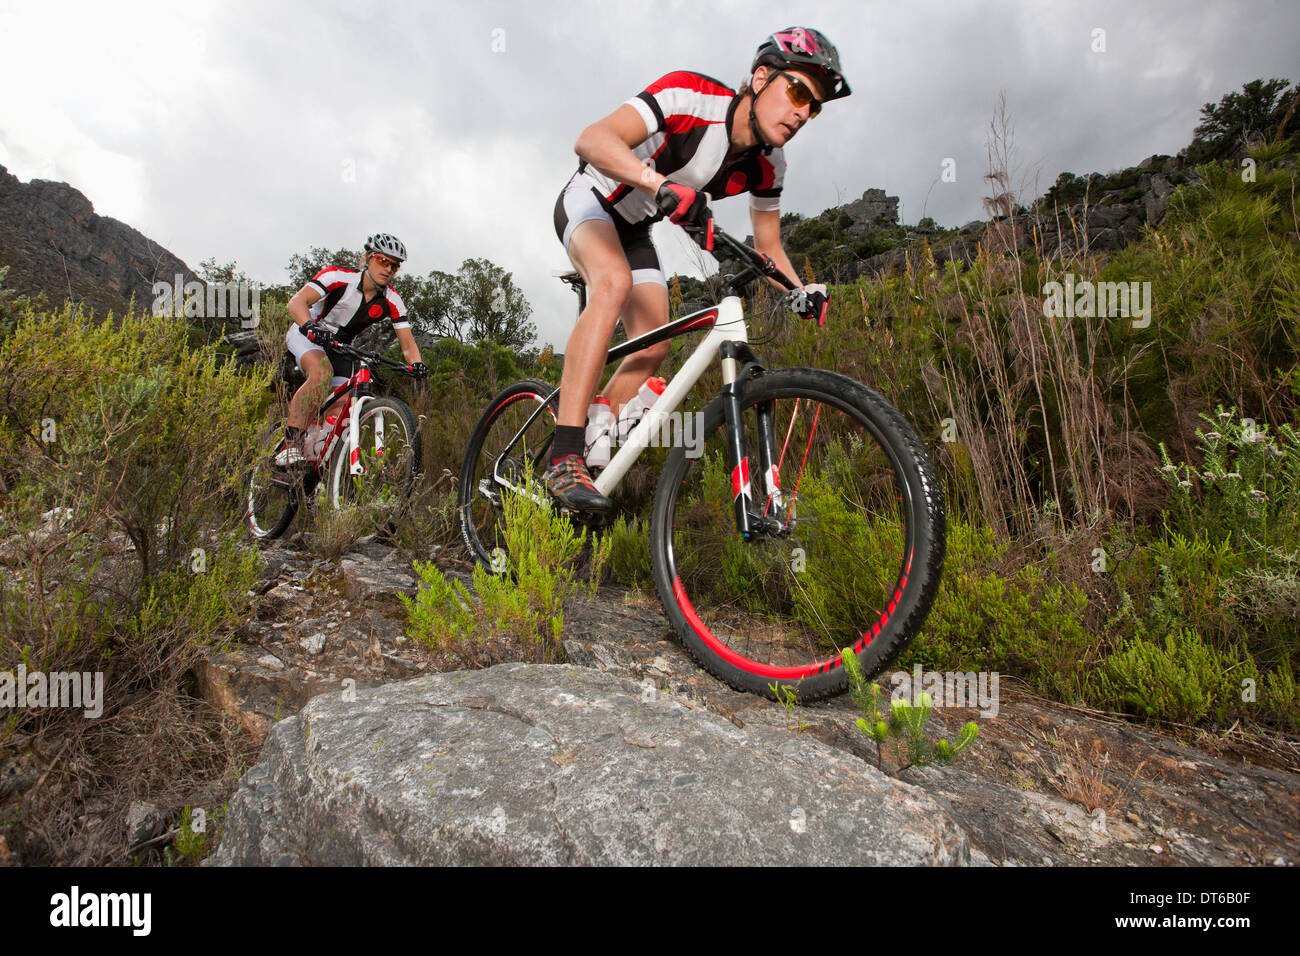 Young couple riding mountain bikes on dirt track - Stock Image